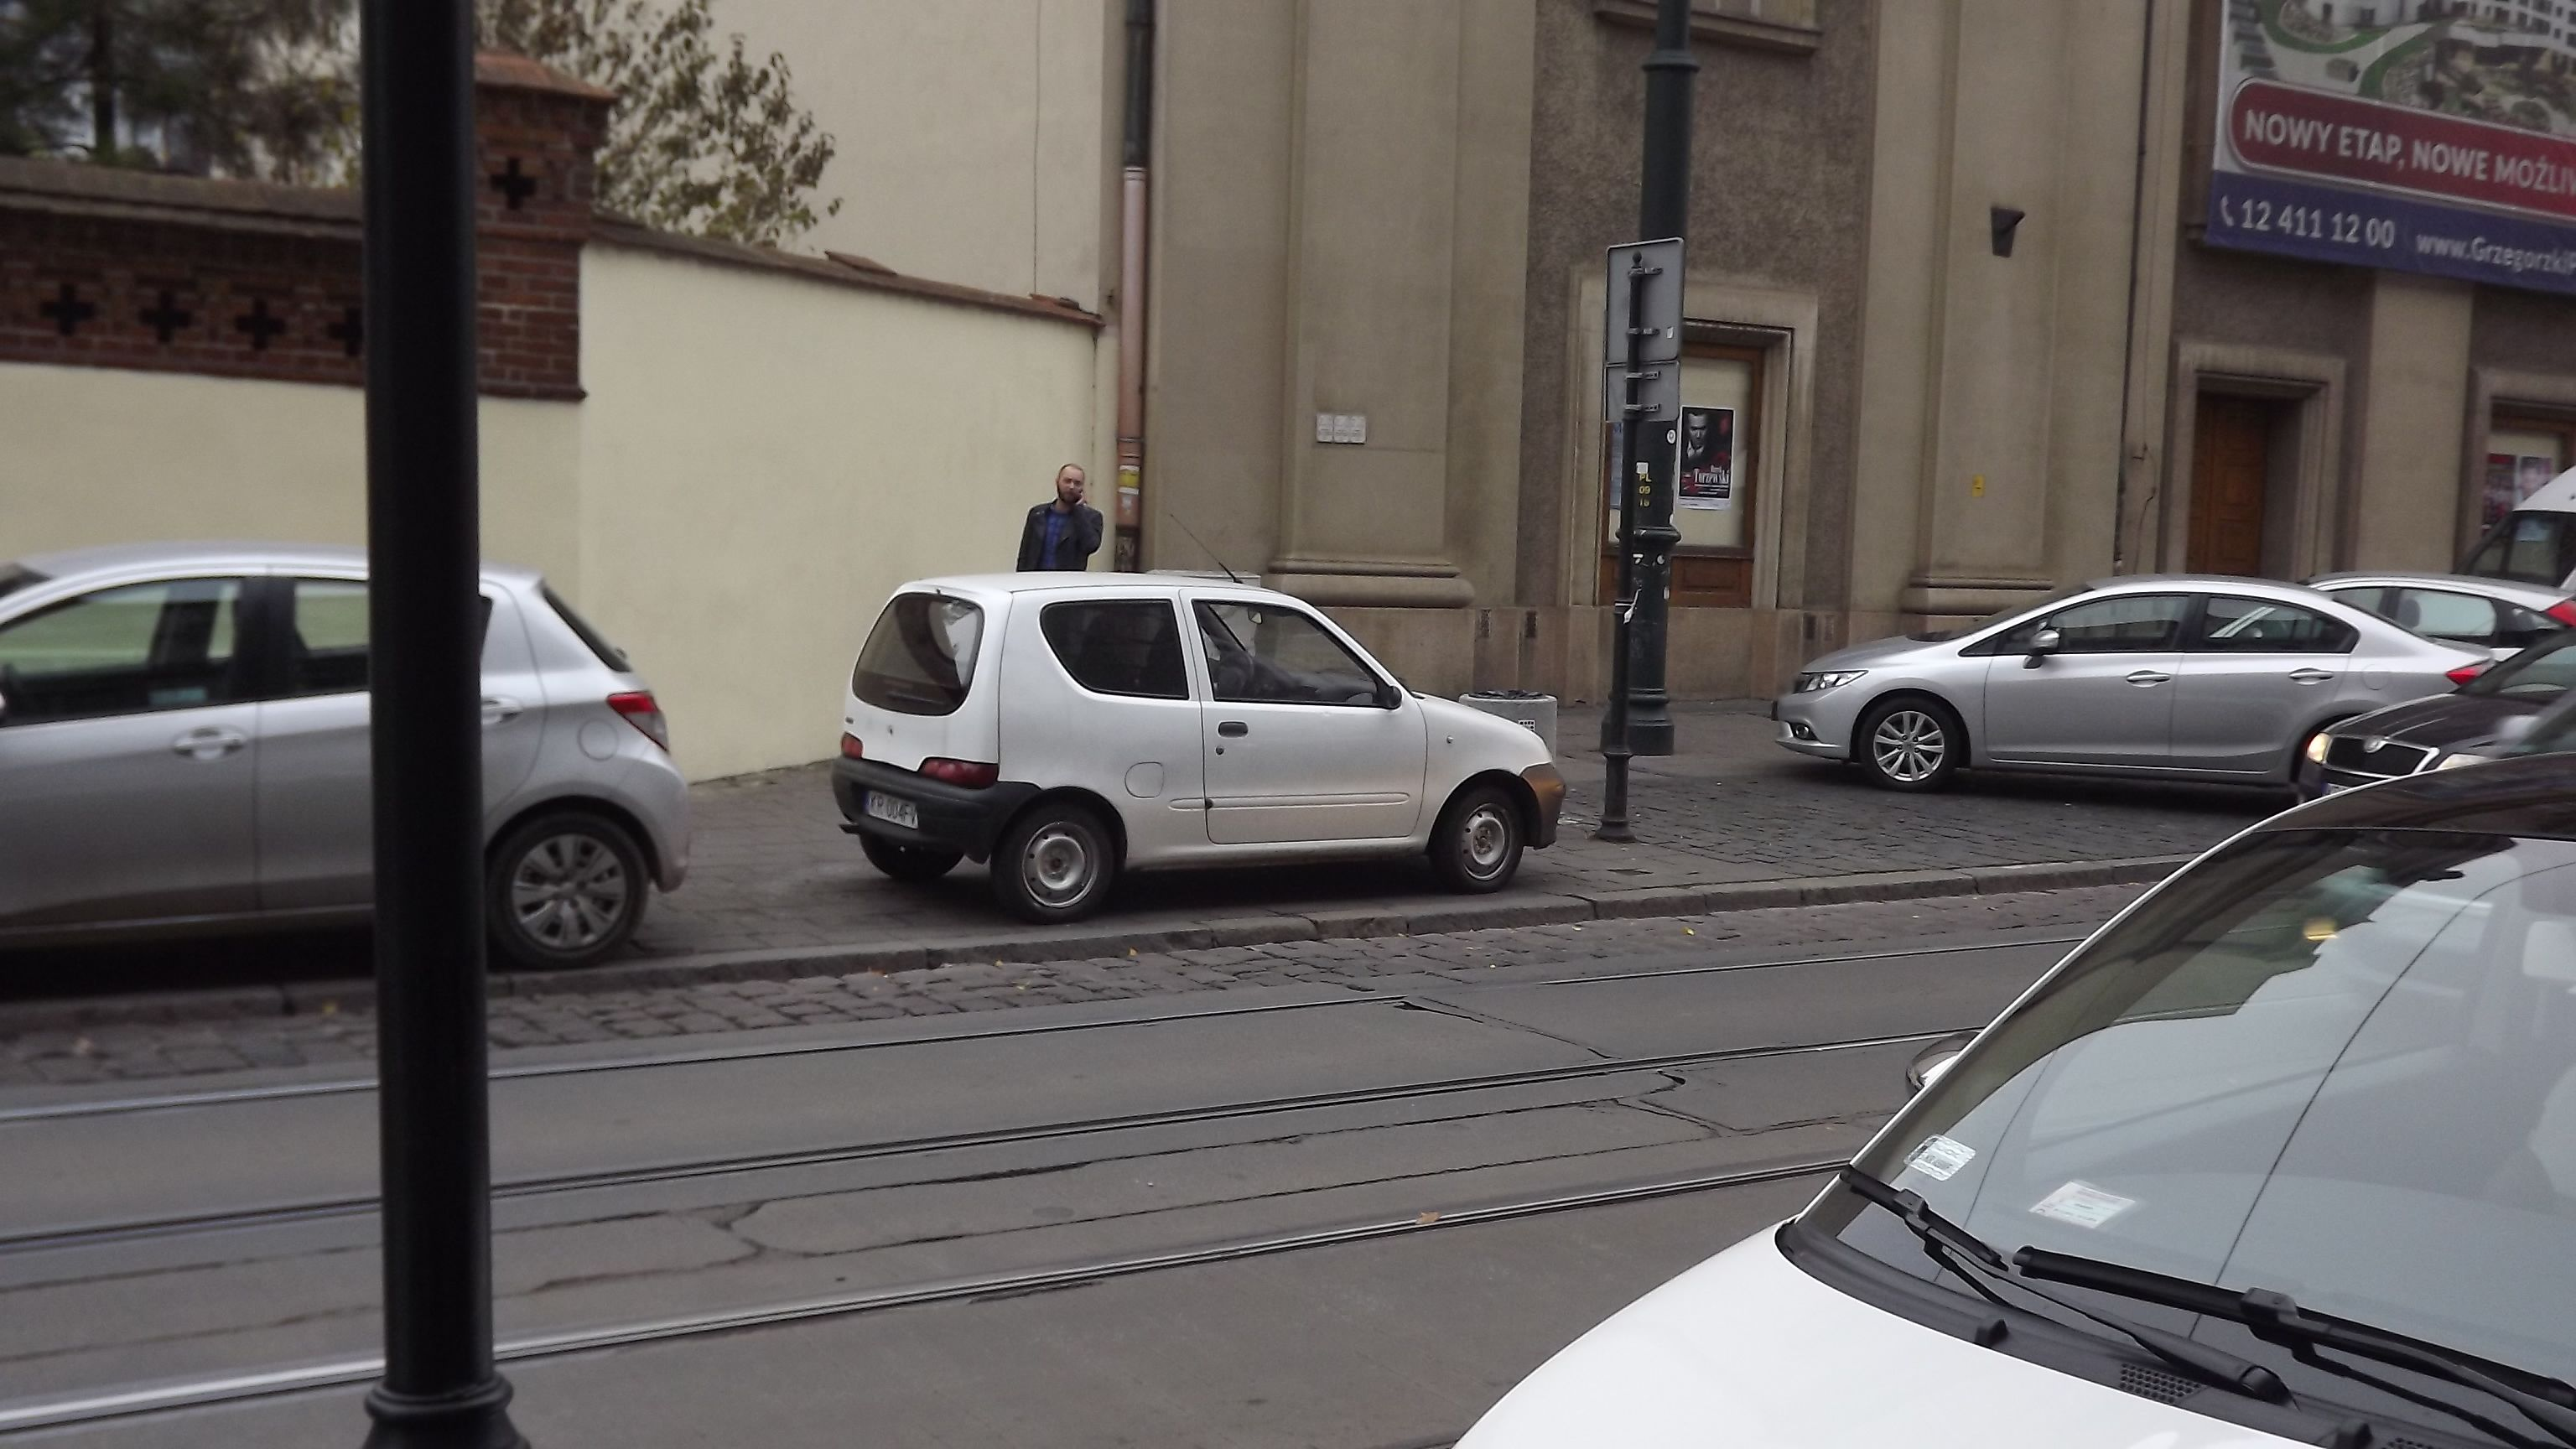 Krakow; downtown/oldtown: Certain streets you Can't park in the street!